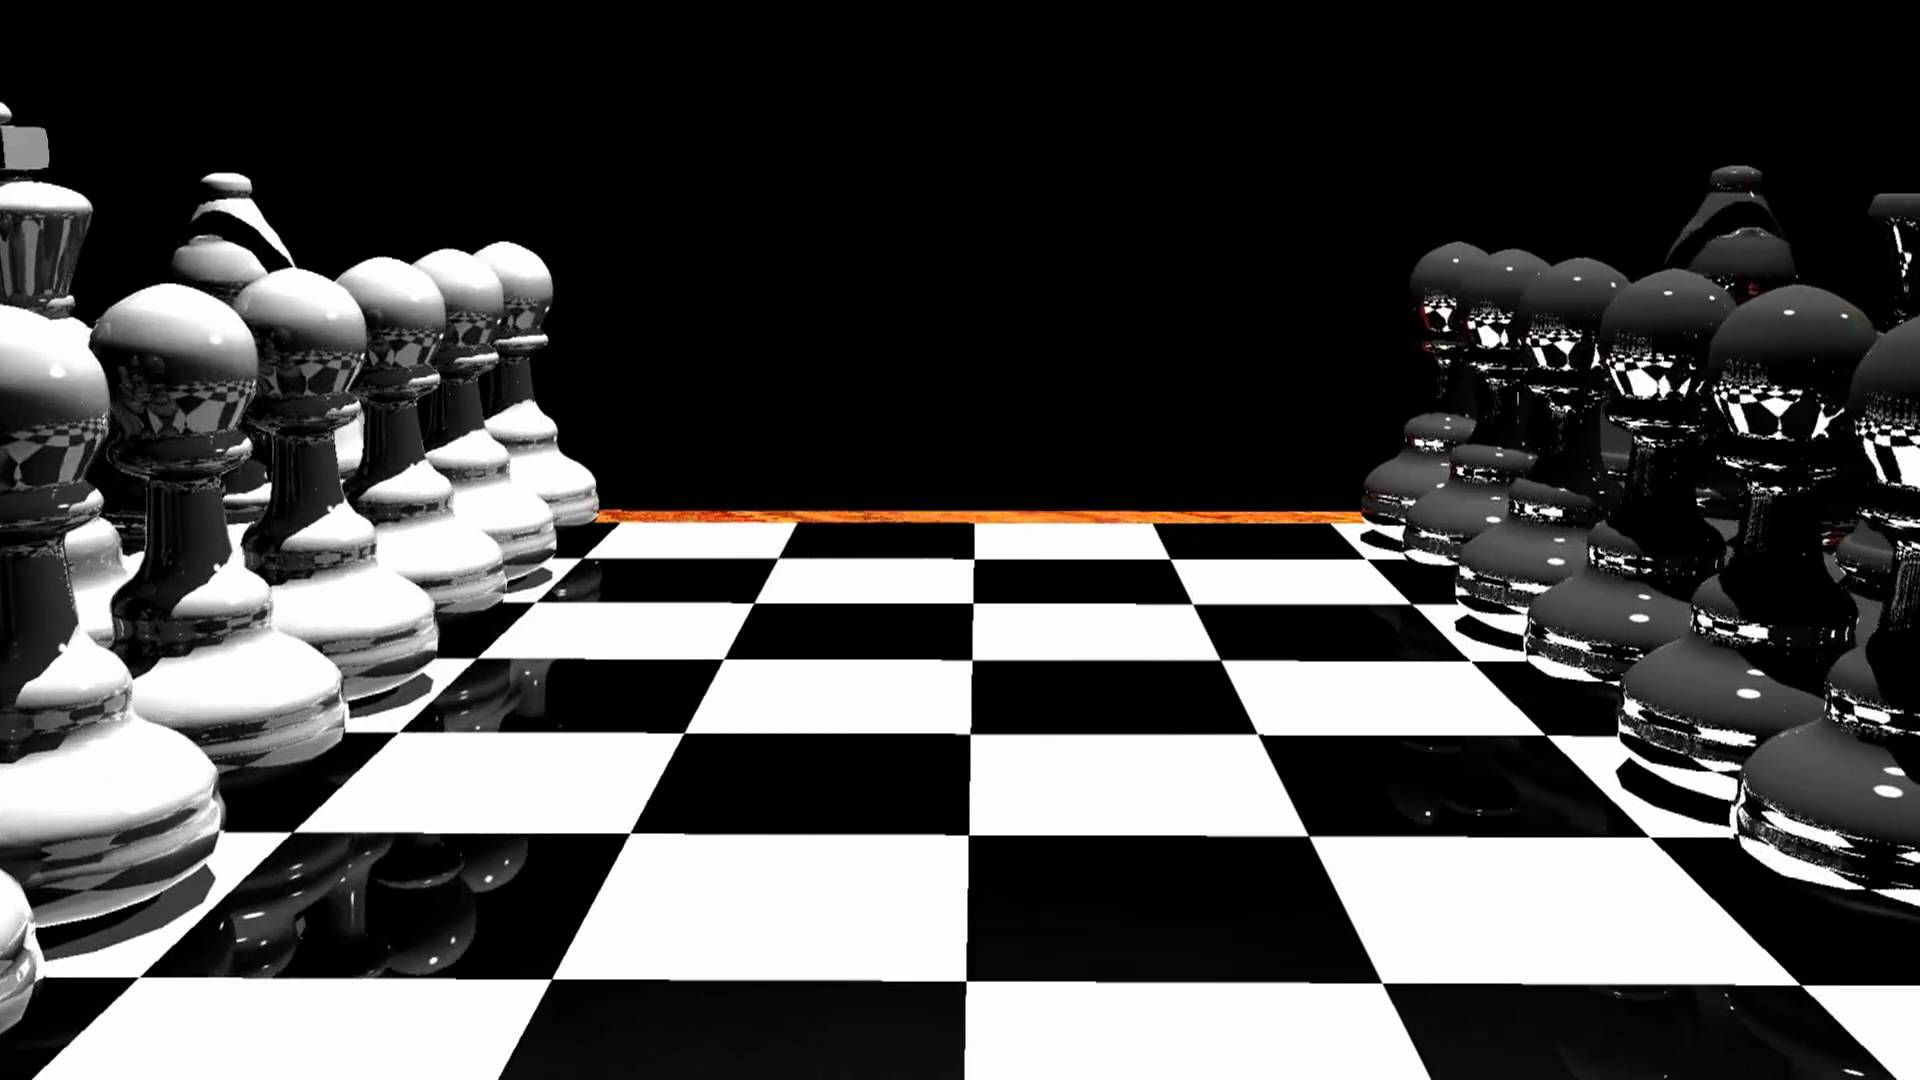 chess Computer Wallpapers, Desktop Backgrounds | 1920x1080 ...